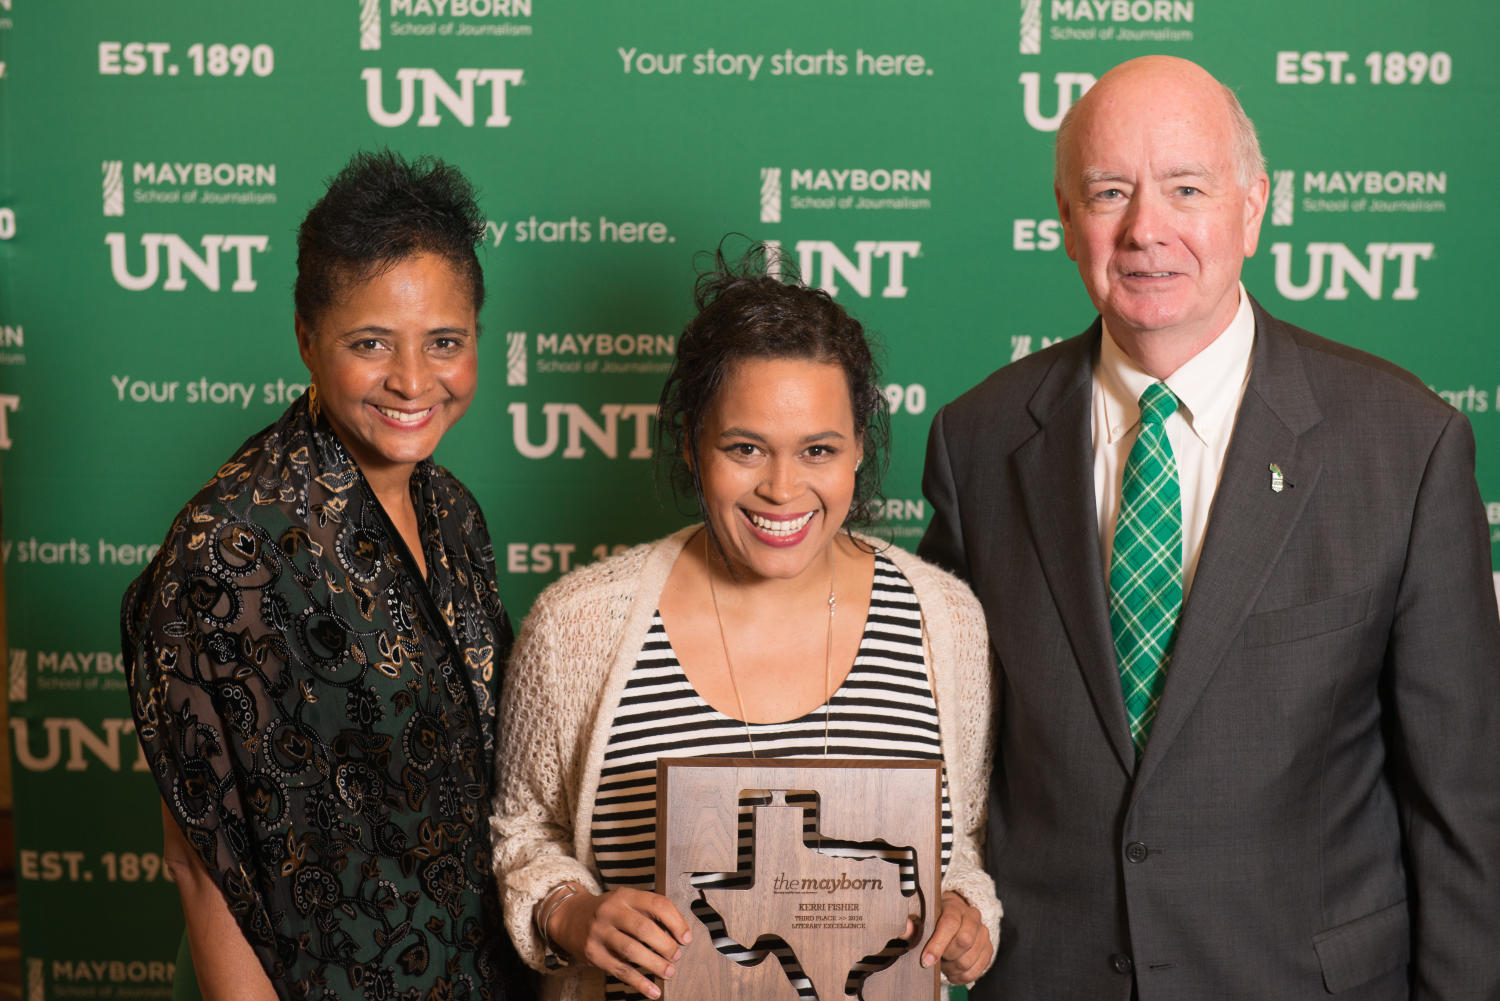 """[Kerri Fischer standing with Dorothy Bland and Joe Dealy Jr.], Photograph of (L-R) Dorothy Bland, Kerri Fischer, and Joe Dealy Jr. standing in front of a UNT and Mayborn backdrop. Fischer is holding the Third Place Literary Excellence award from The Mayborn for her book manuscript, """"Black, White, Other: Stories of Race, Wonder and Self-Integration"""". The award was presented to her at the Literary Lights Dinner during the Mayborn Literary Nonfiction Conference. The dinner was held in the International Ballroom at the Hilton DFW Lakes Executive Conference Center, Grapevine, TX.,"""